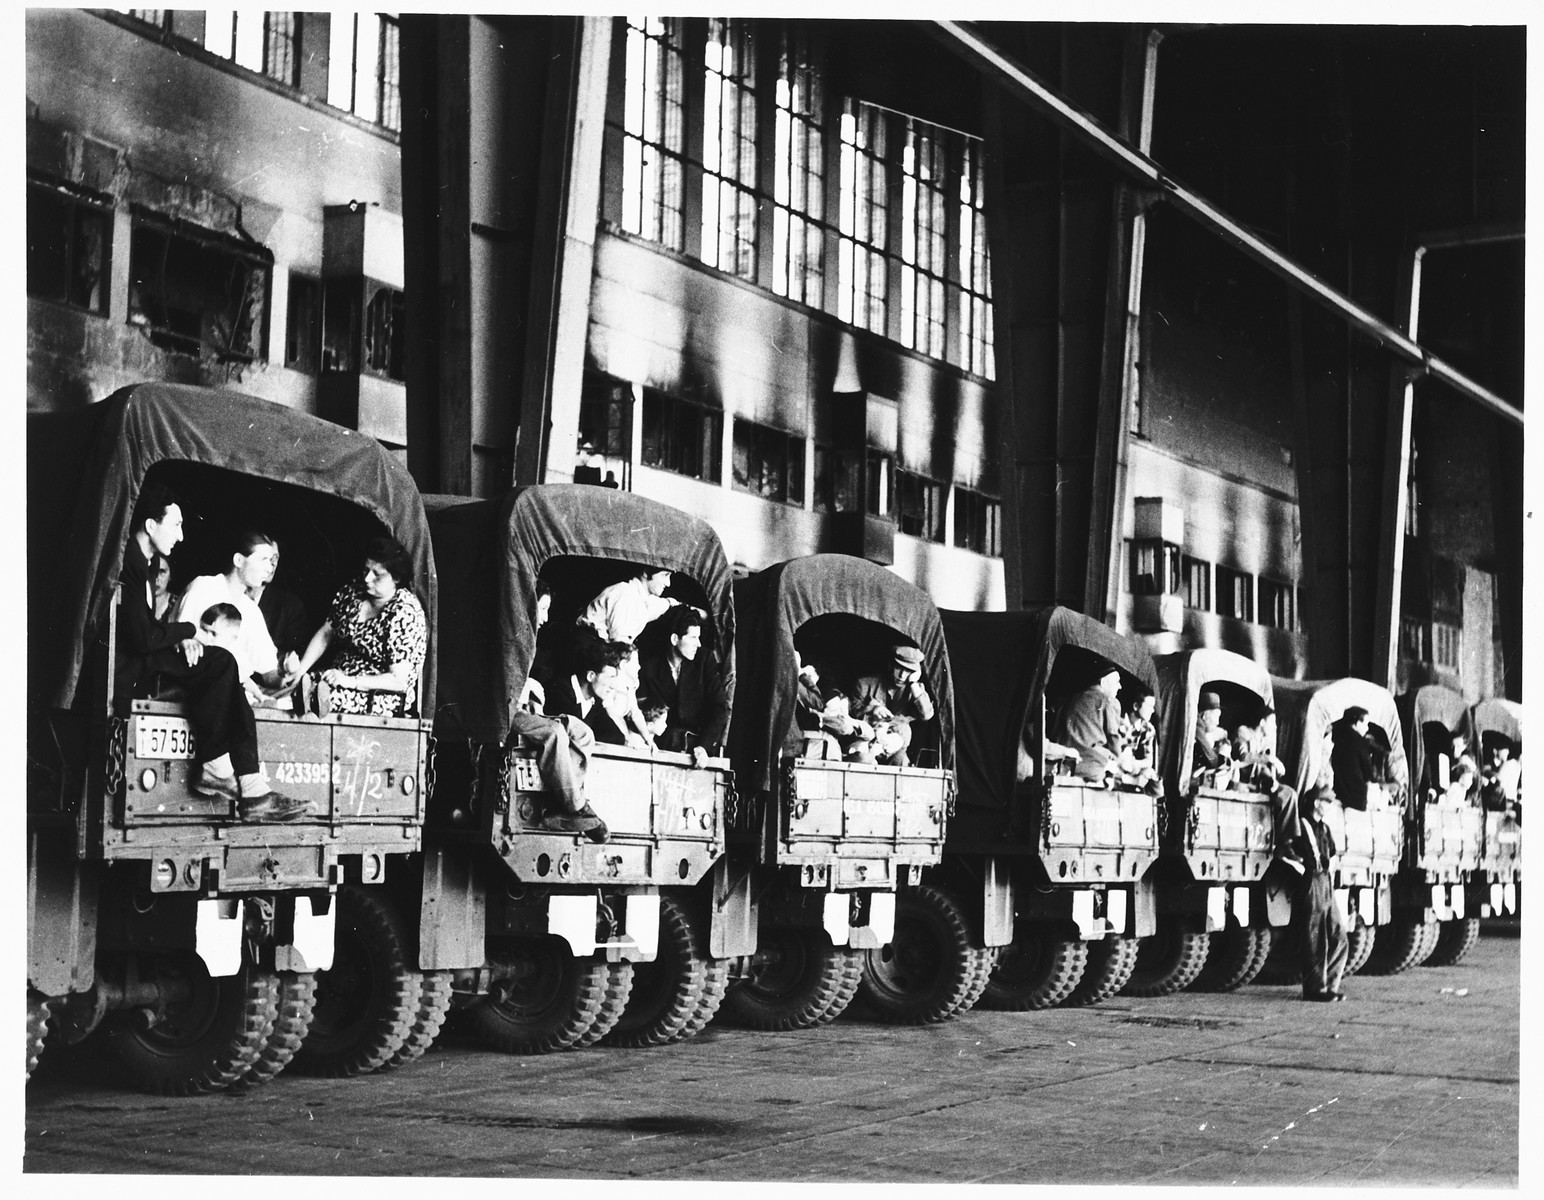 Canvas covered trucks packed with Jewish DPs [who are being evacuated to Frankfurt am Main during the Berlin Blockade] are parked in a row [probably at a Berlin airport].